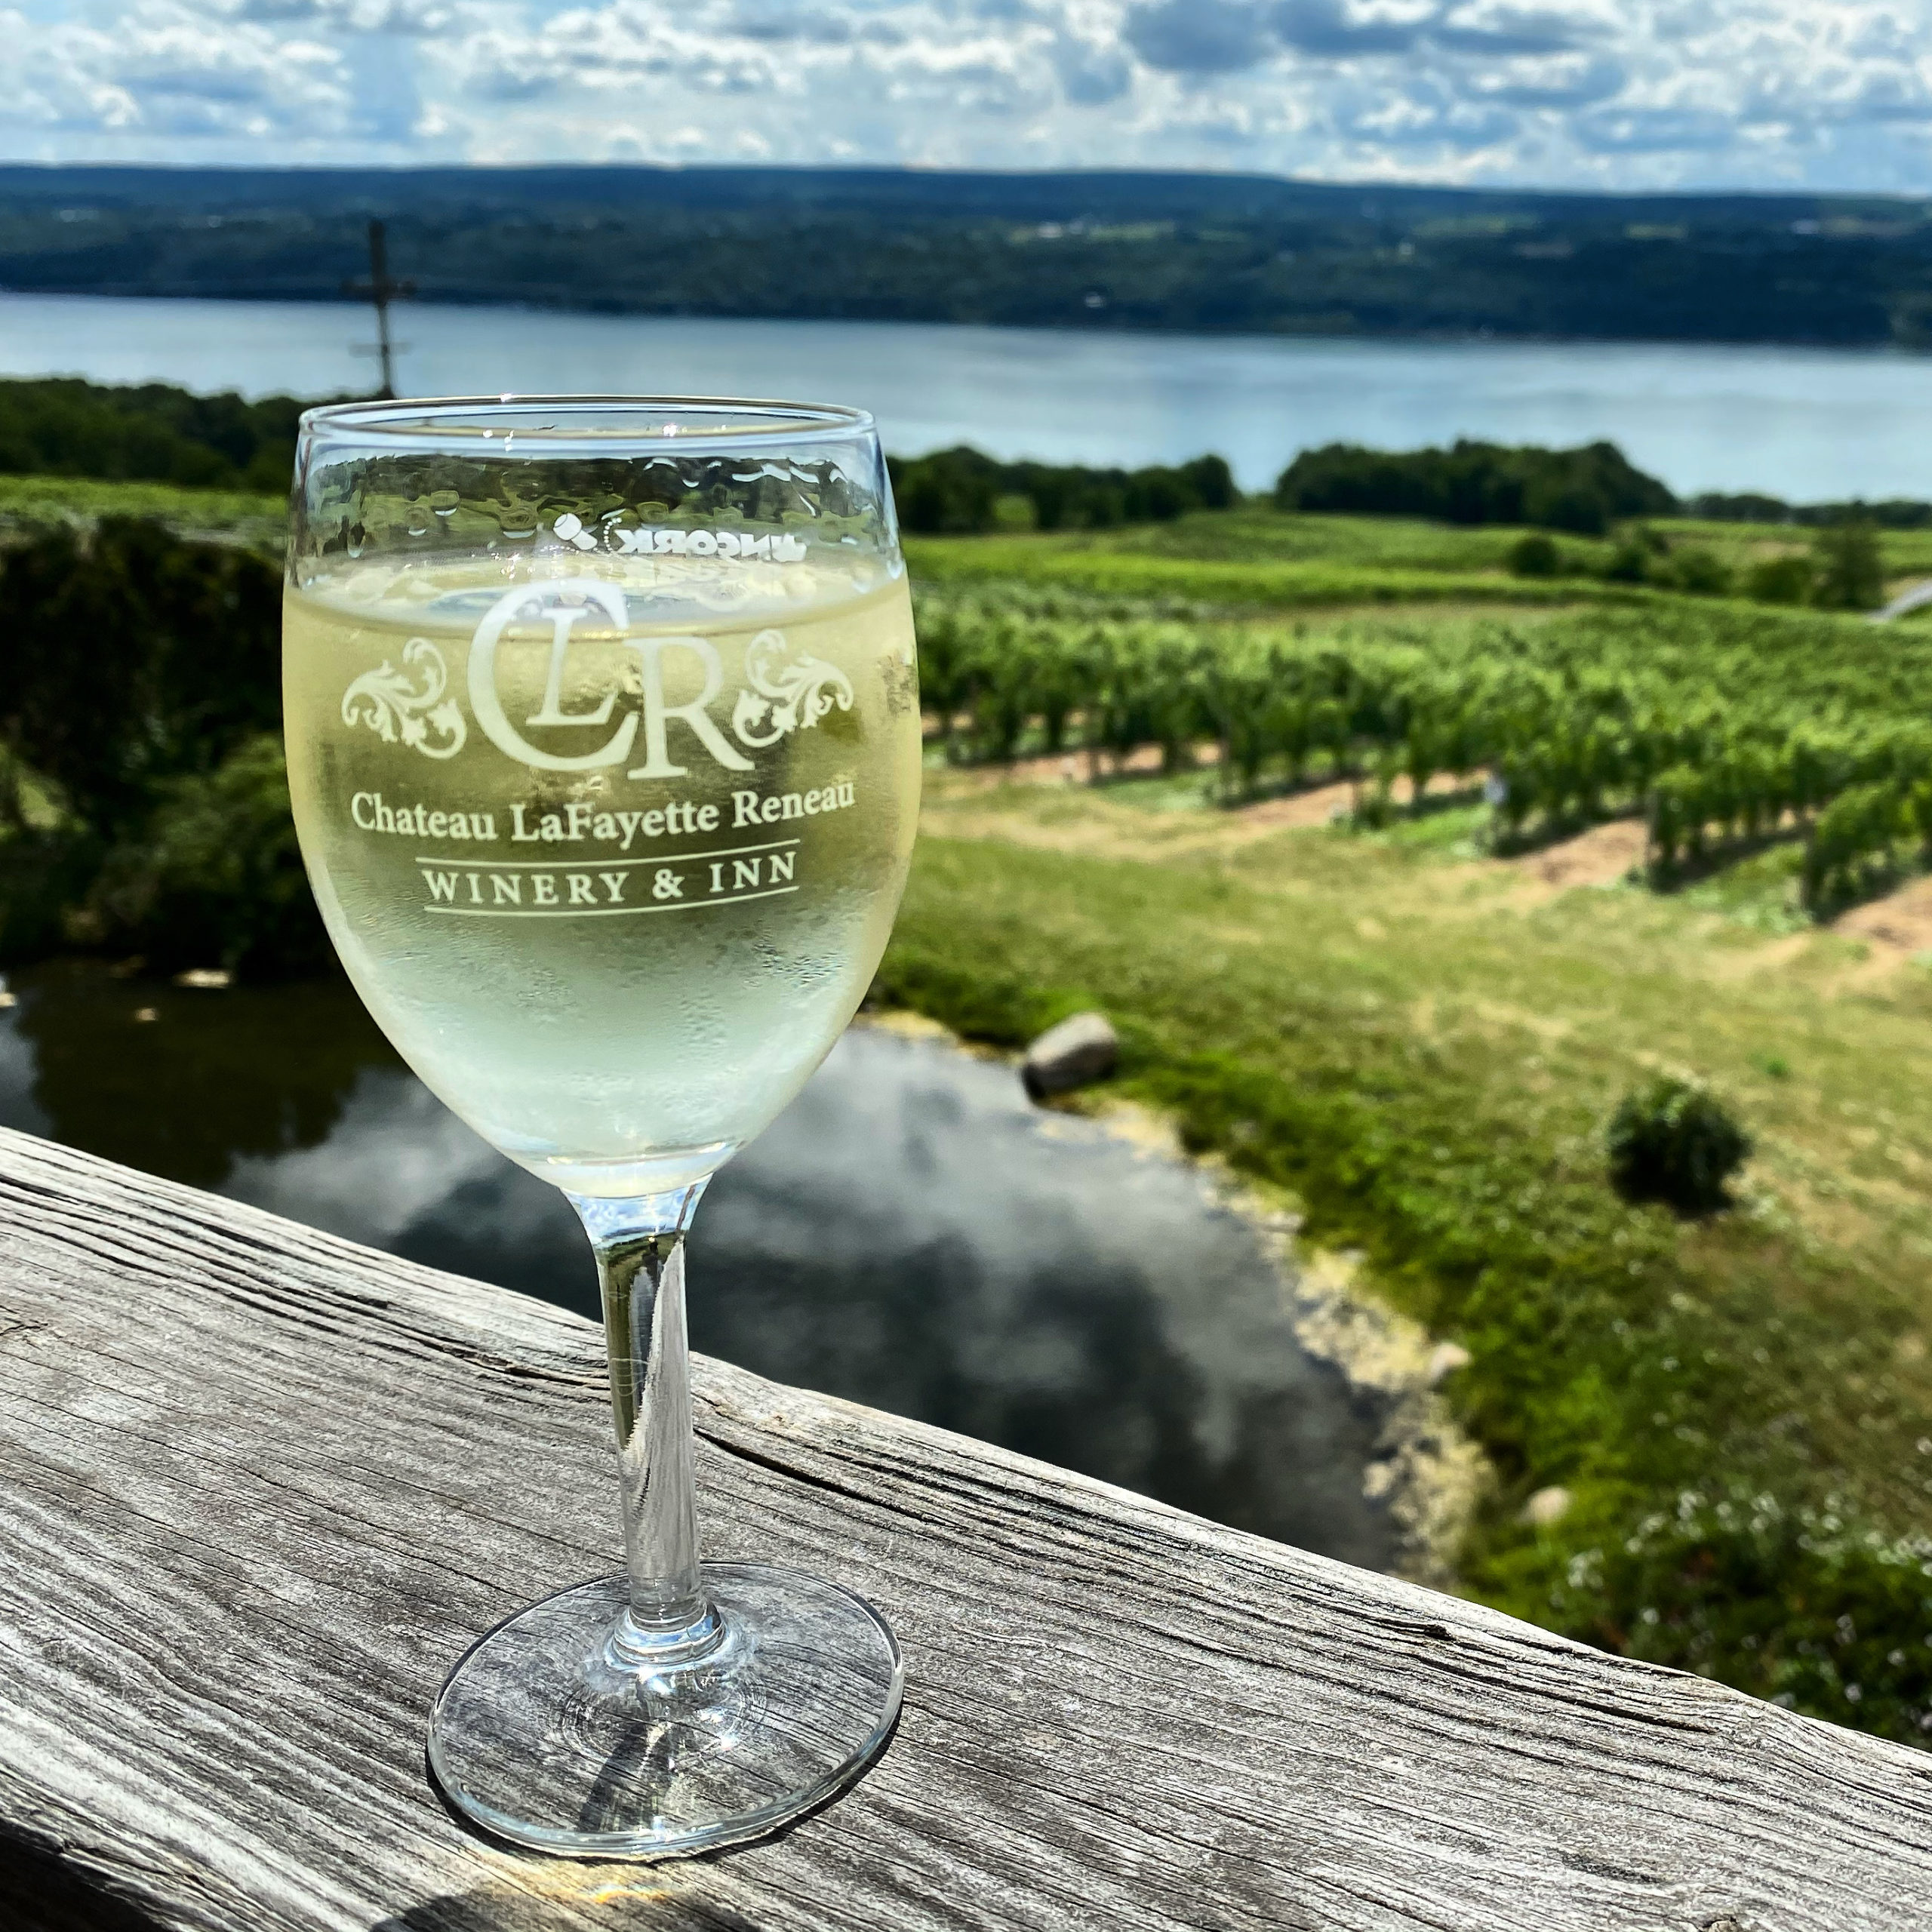 Watkins Glen vineyard view